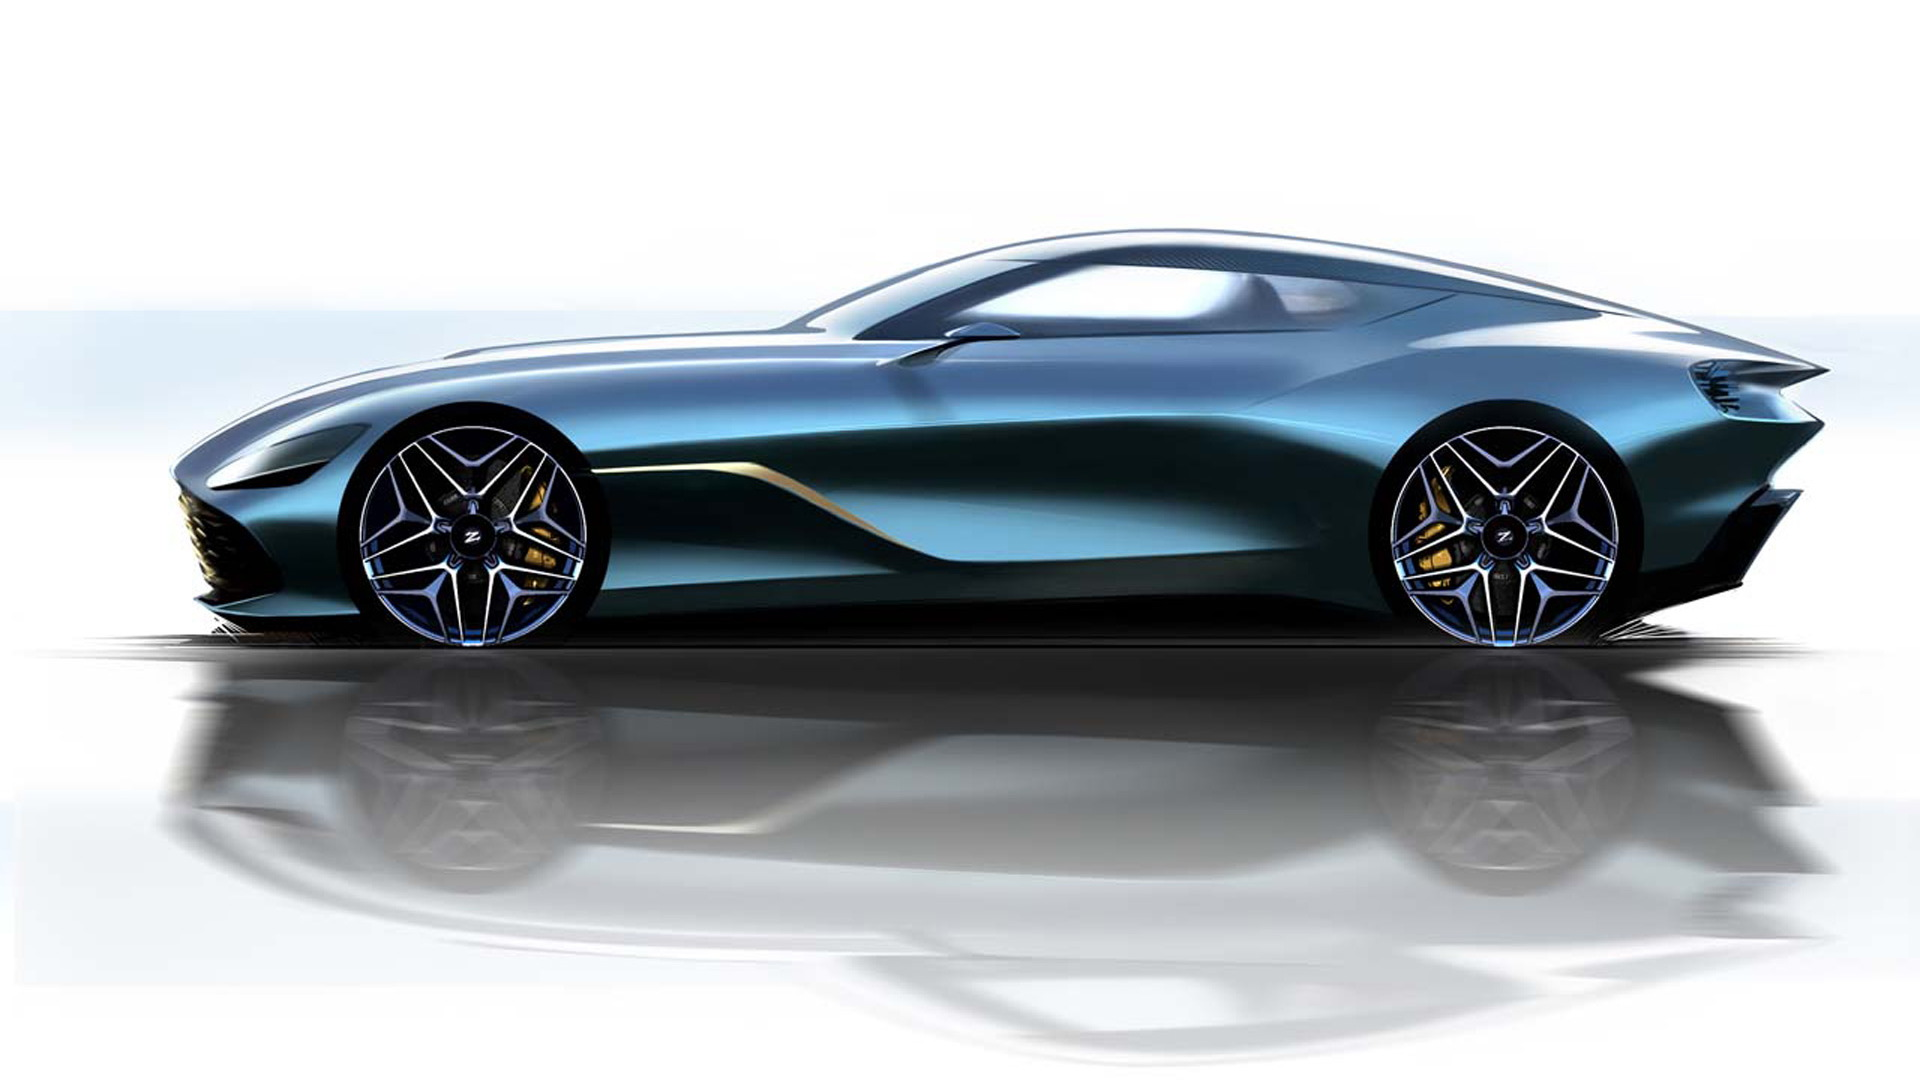 Aston Martin Teases Ultra-Limited DBS GT Zagato Sketches